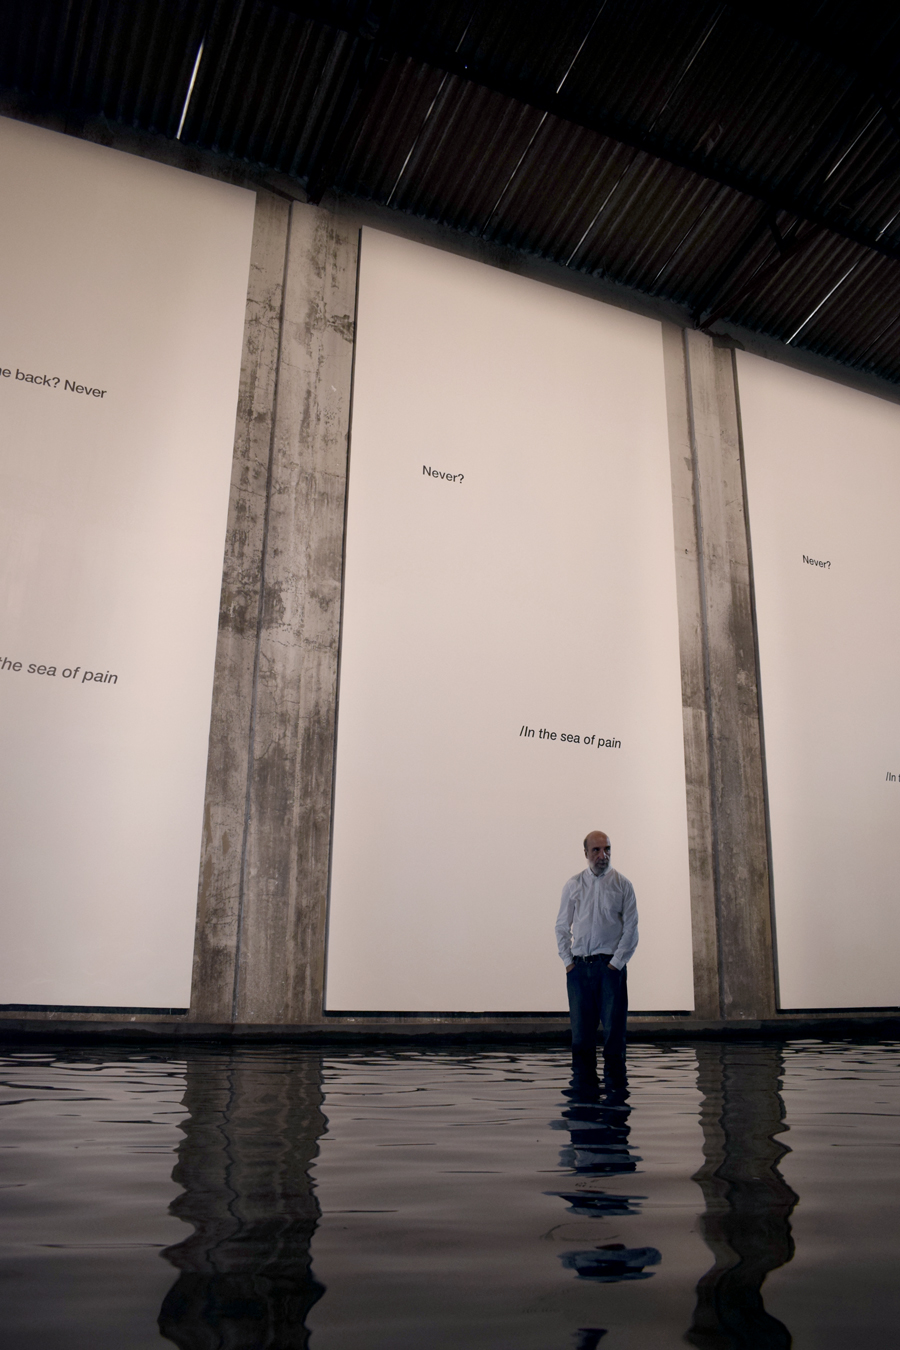 """Among his most important distinctions are the Guggenheim Fellowship in 1984, the National Award for Literature in 2000 and the Pablo Neruda Ibero-American Poetry Award.In the Kochi-Muziris Biennale 2016, he presented the poem-installation """"Sea of Pain"""", in which he paid homage to the victims and refugees of the crisis in Syria and to Alan Kourdi, the three-year-old boy that was found dead on a beach in Turkey. -"""